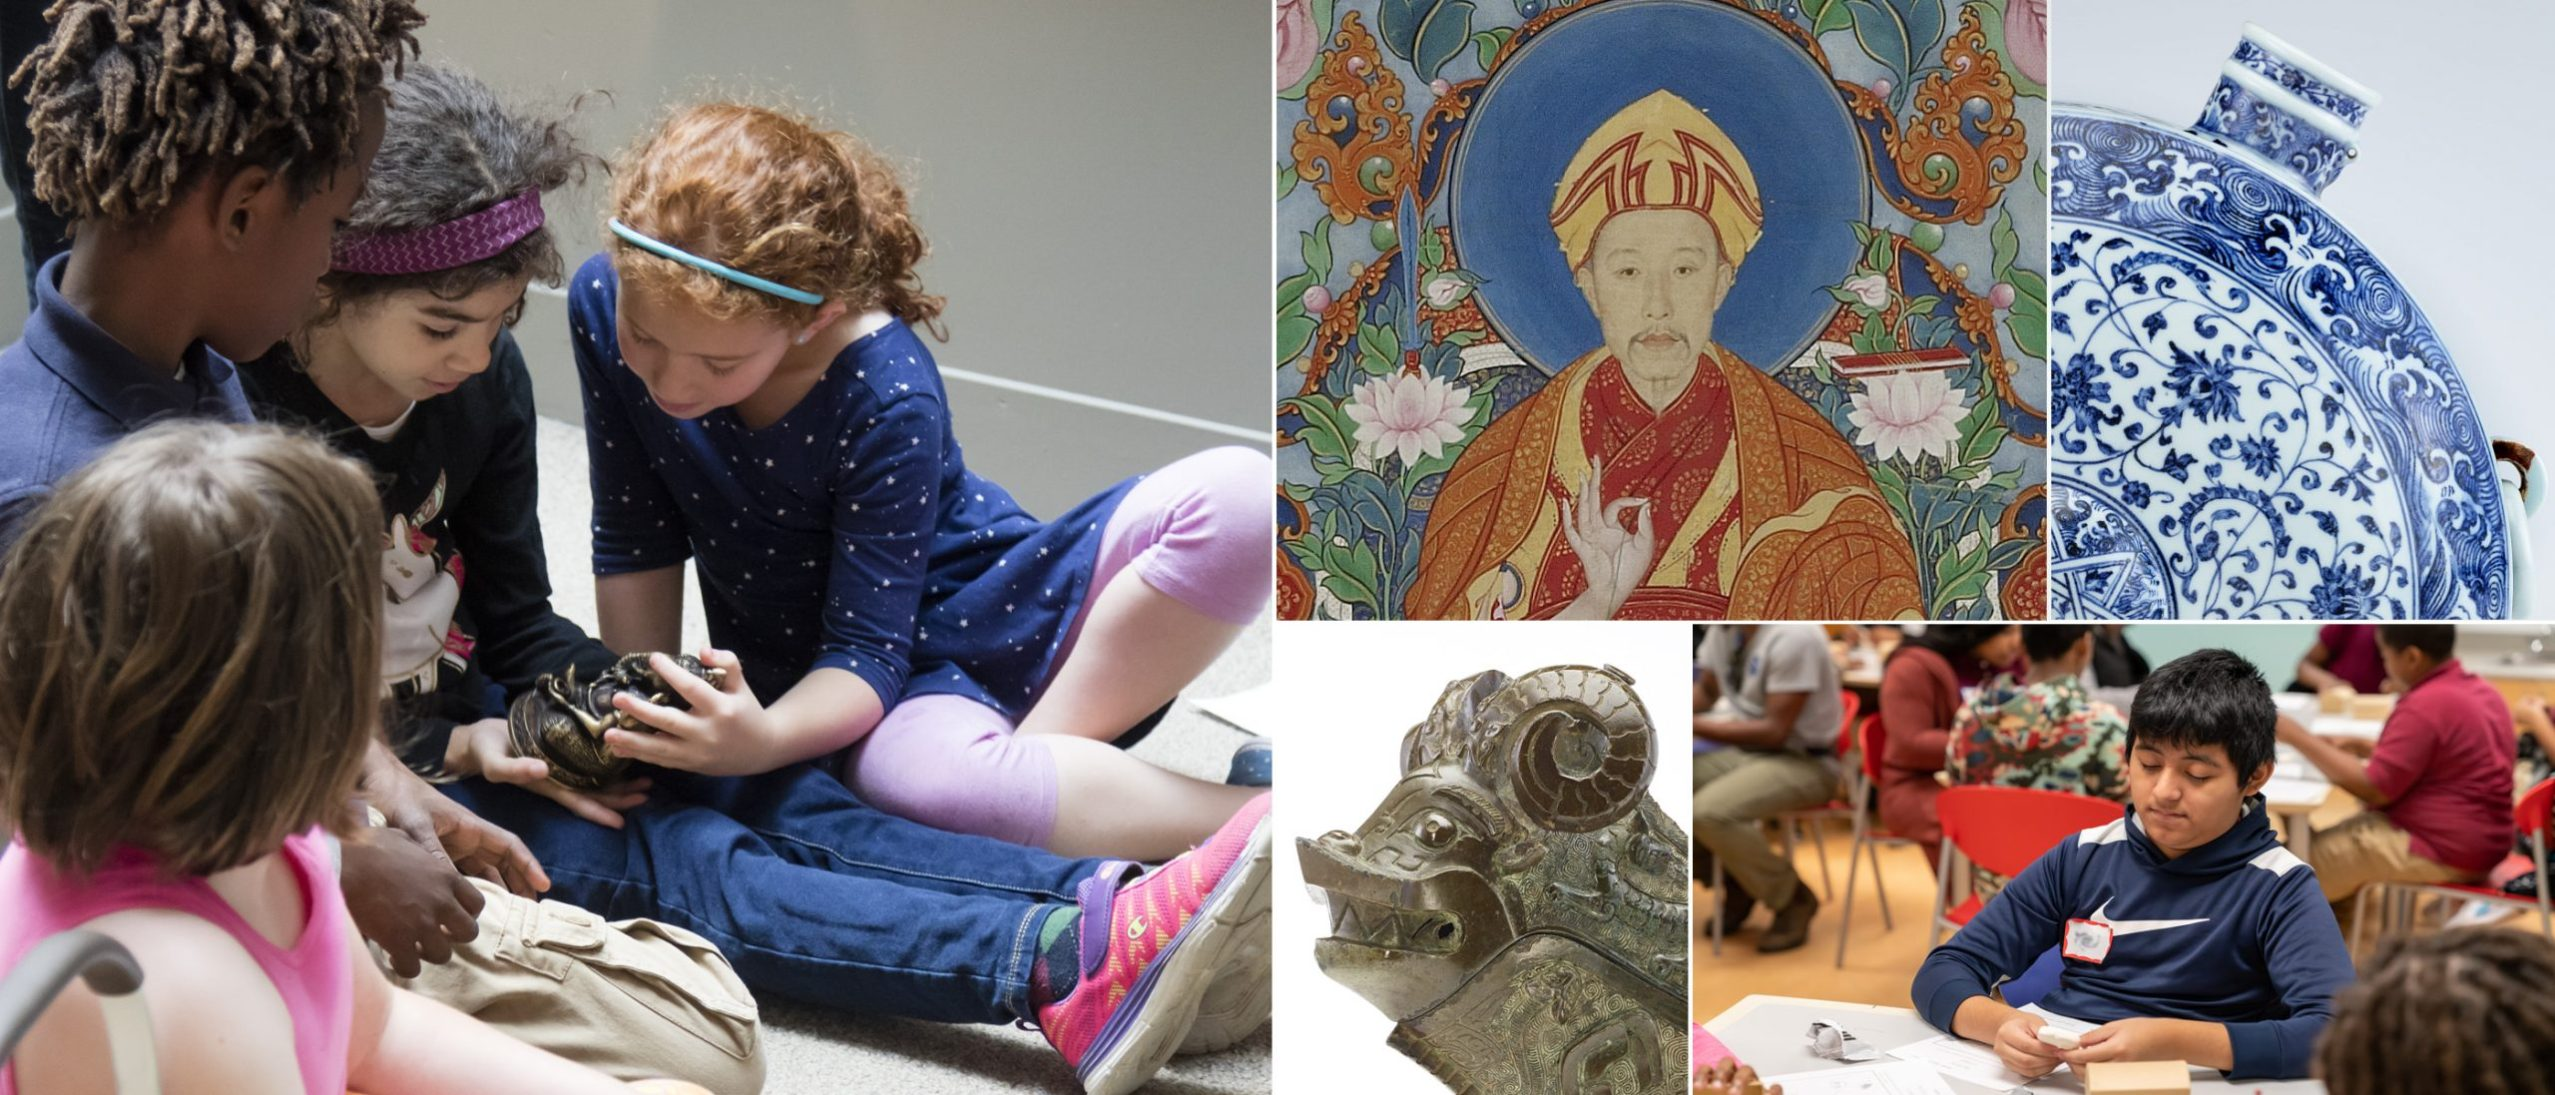 collage of children in a museum and chinese artifacts